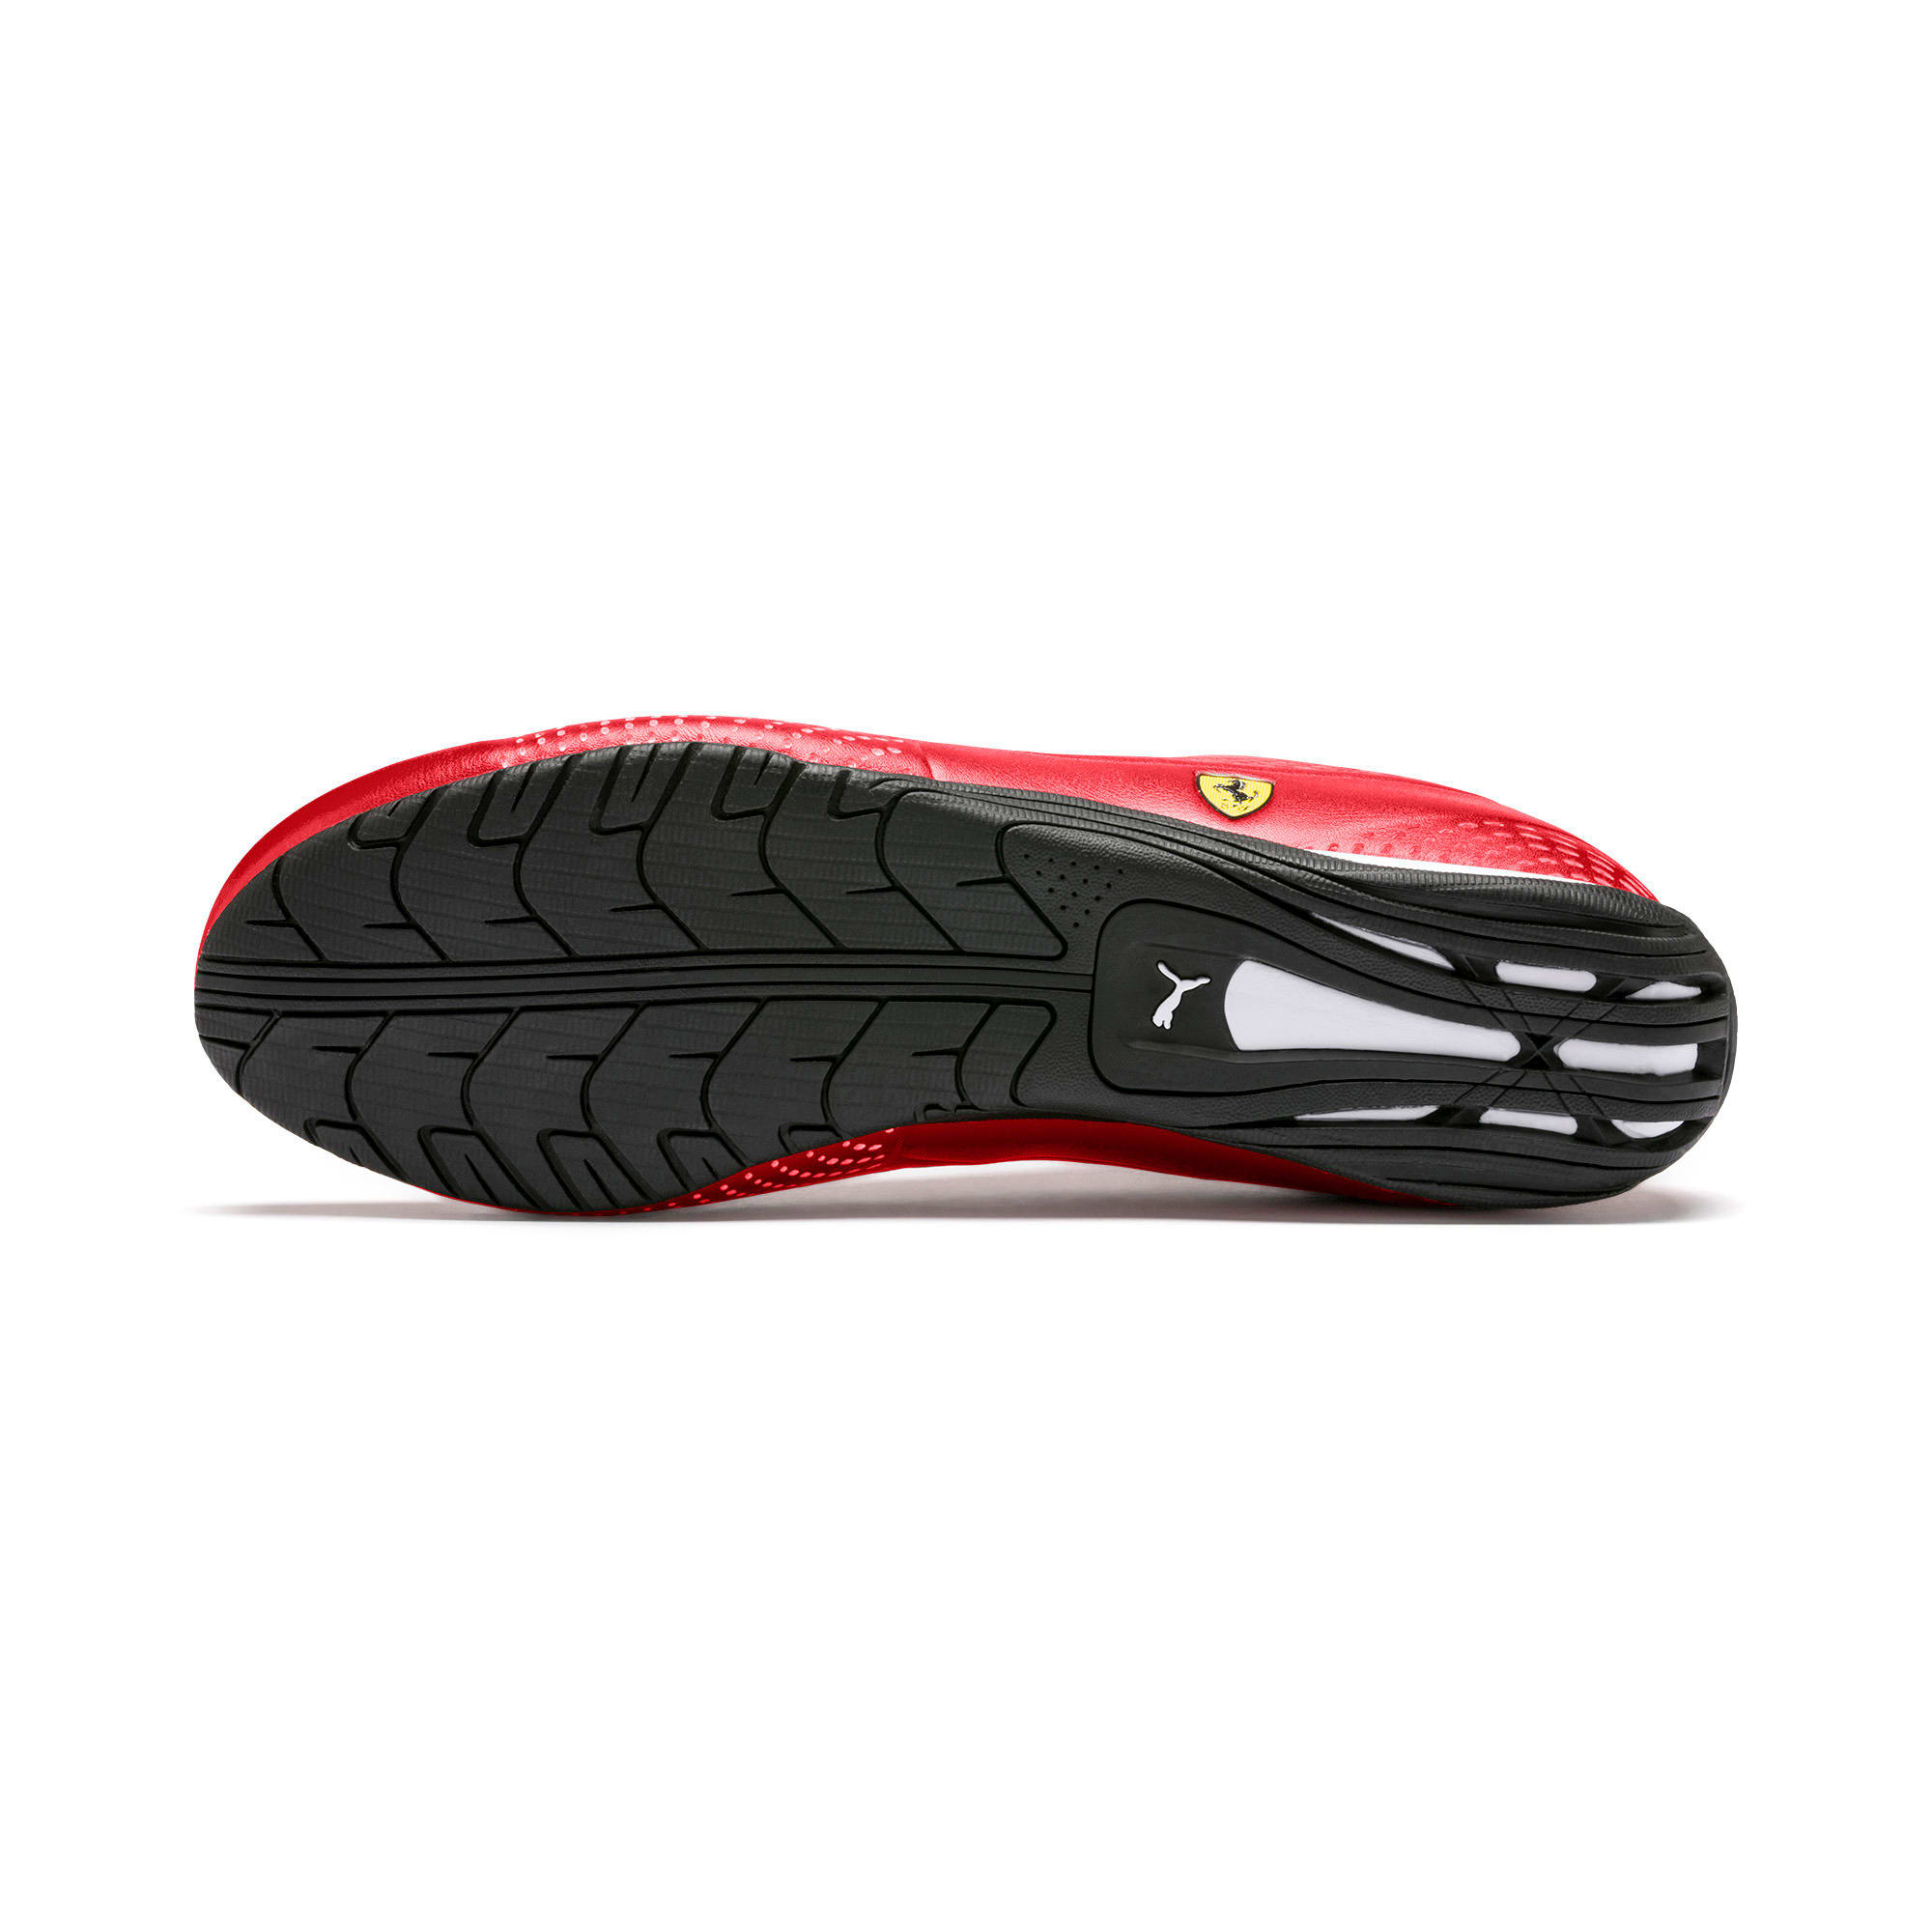 Thumbnail 5 of Ferrari Drift Cat 5 Ultra II Sneaker, Rosso Corsa-Puma White, medium